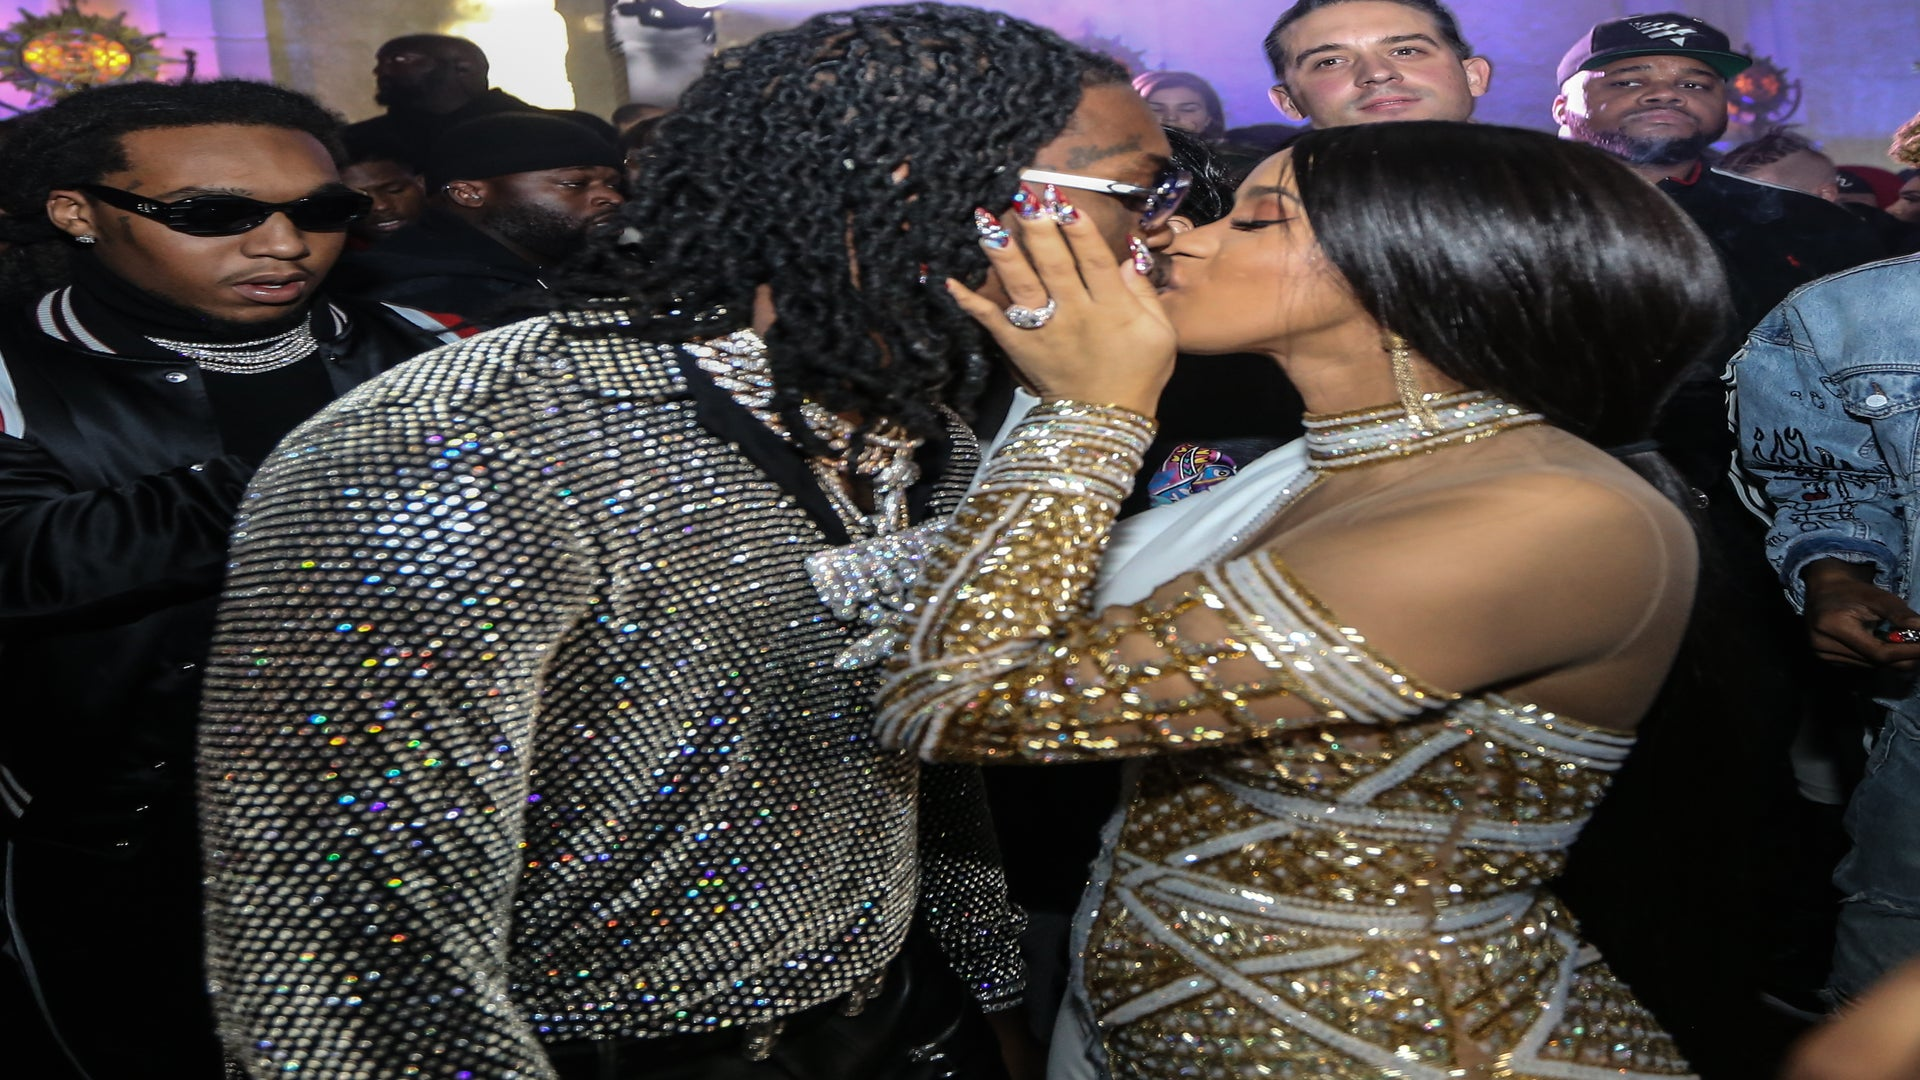 Offset Gives Cardi B a Lamborghini SUV As an Early Birthday Gift